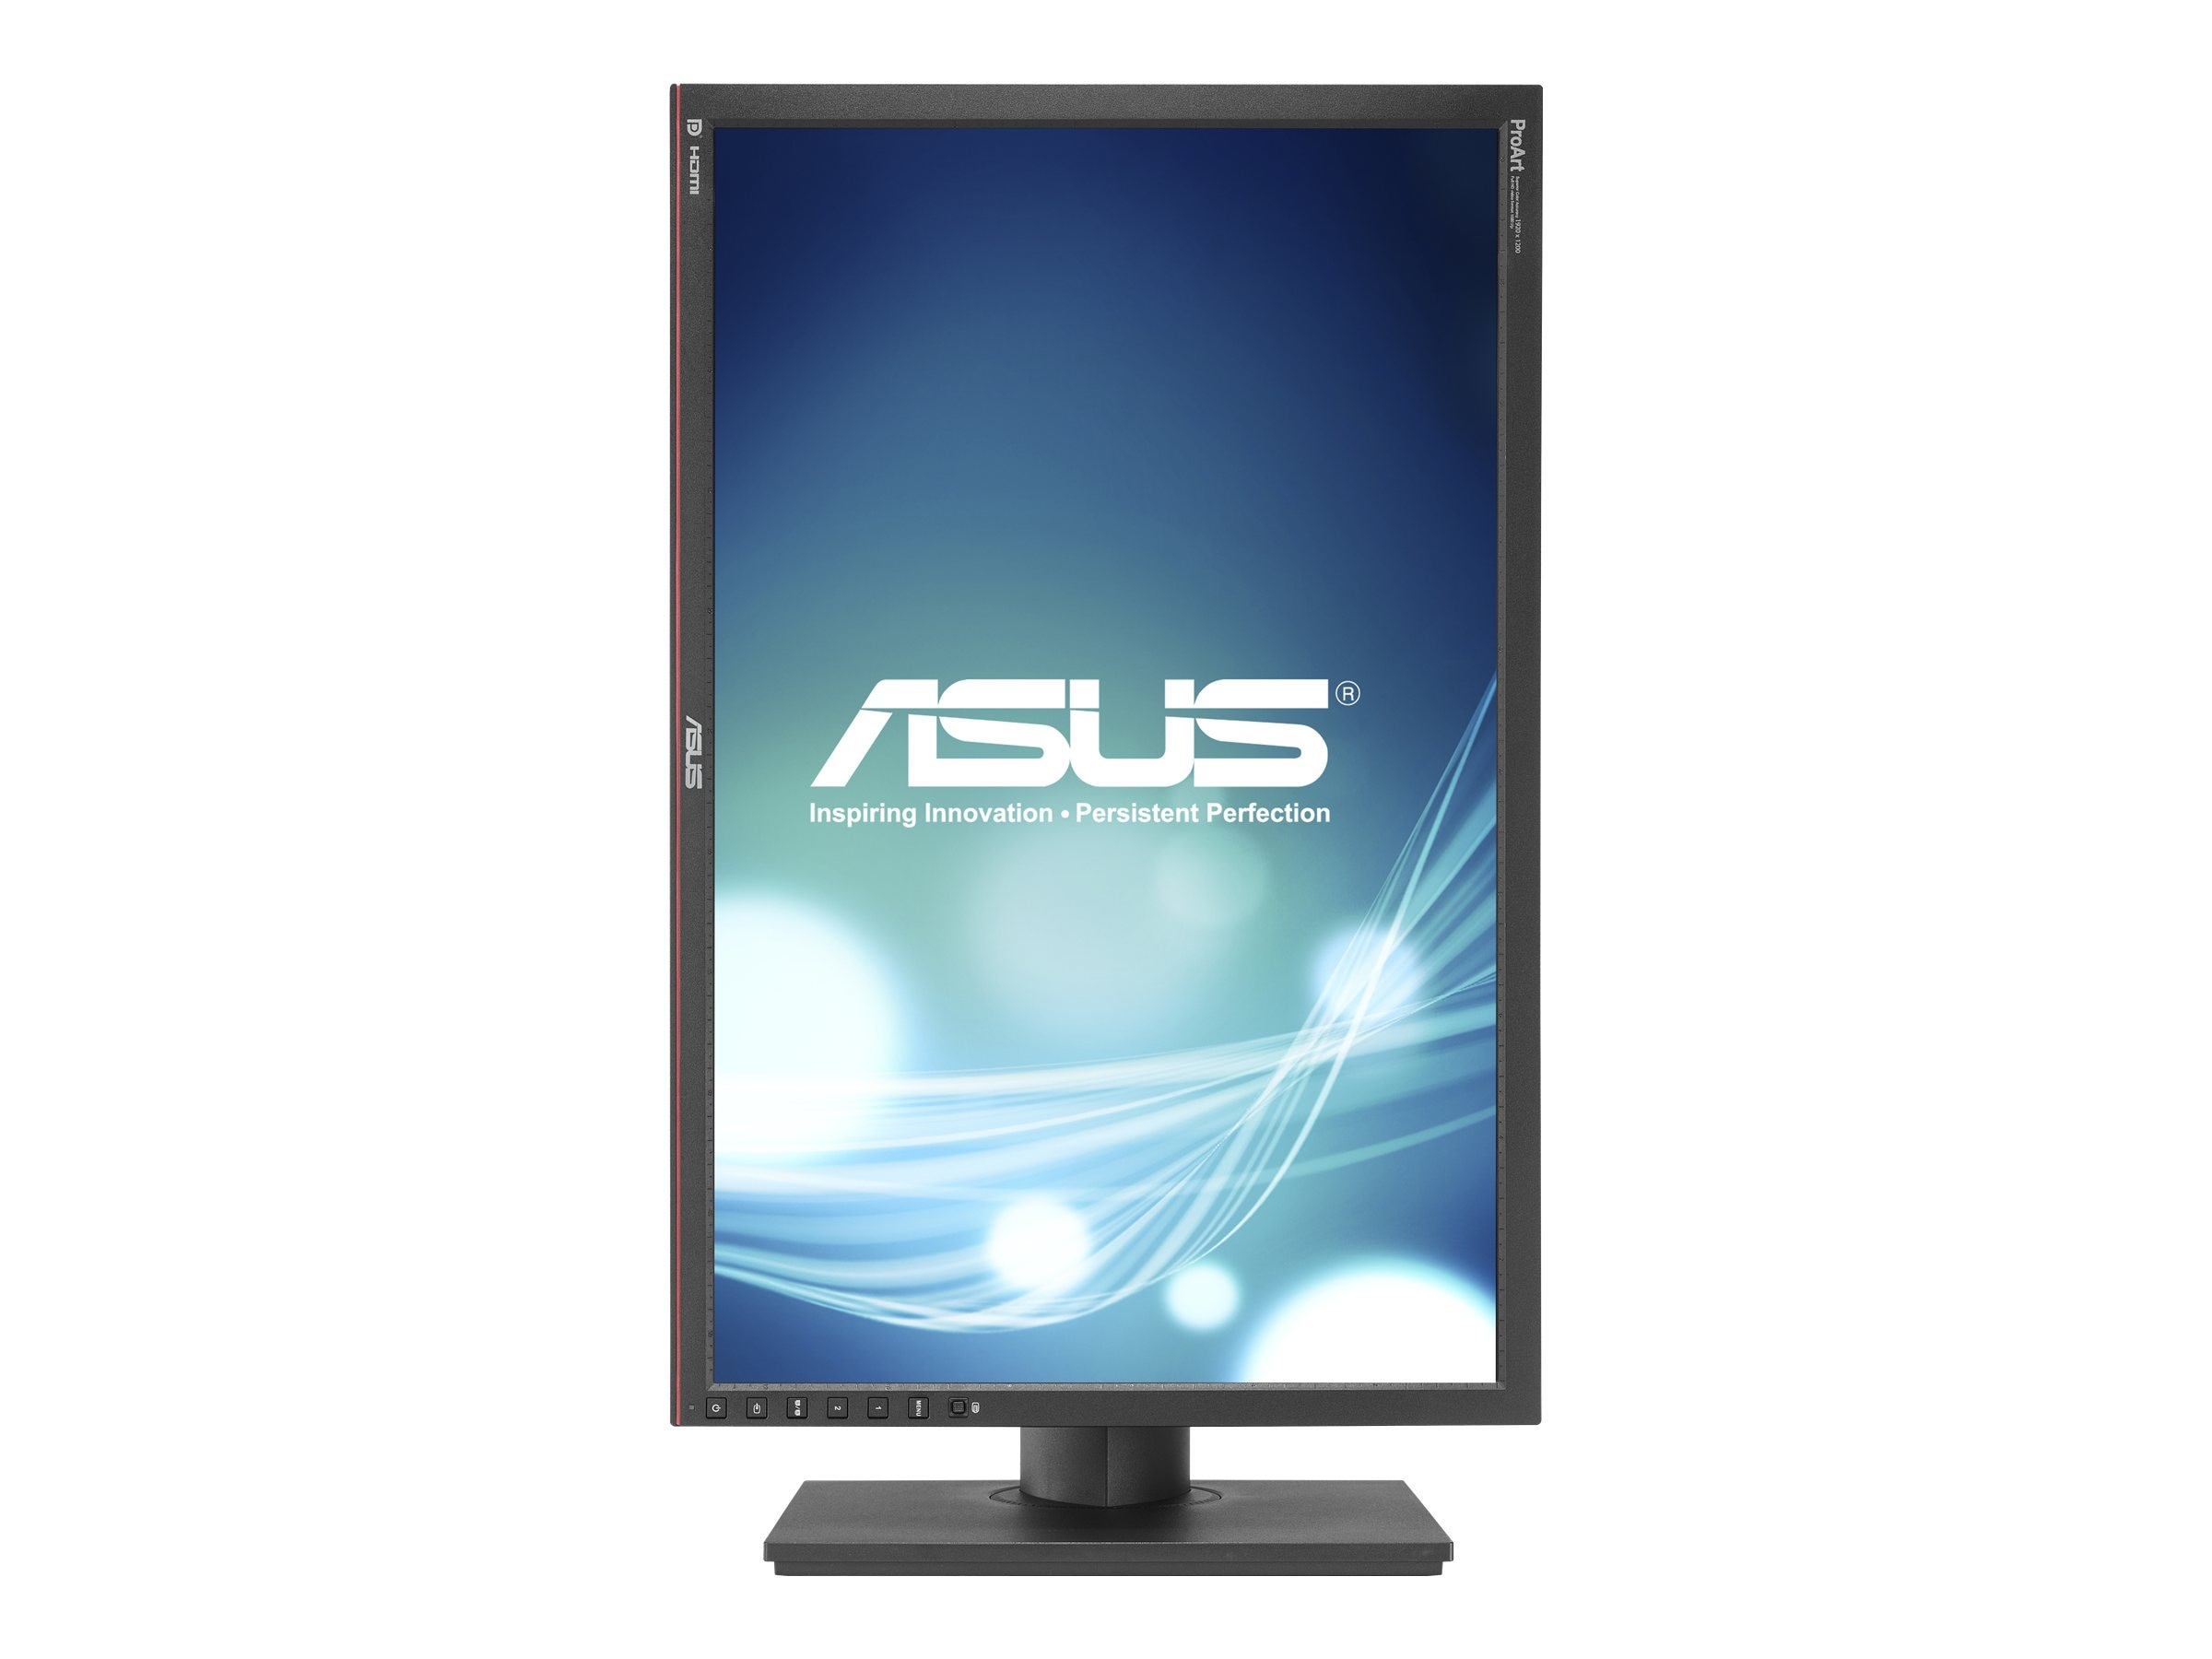 Asus 24 PA249Q LED-LCD Monitor, Black, PA249Q, 15686199, Monitors - LED-LCD